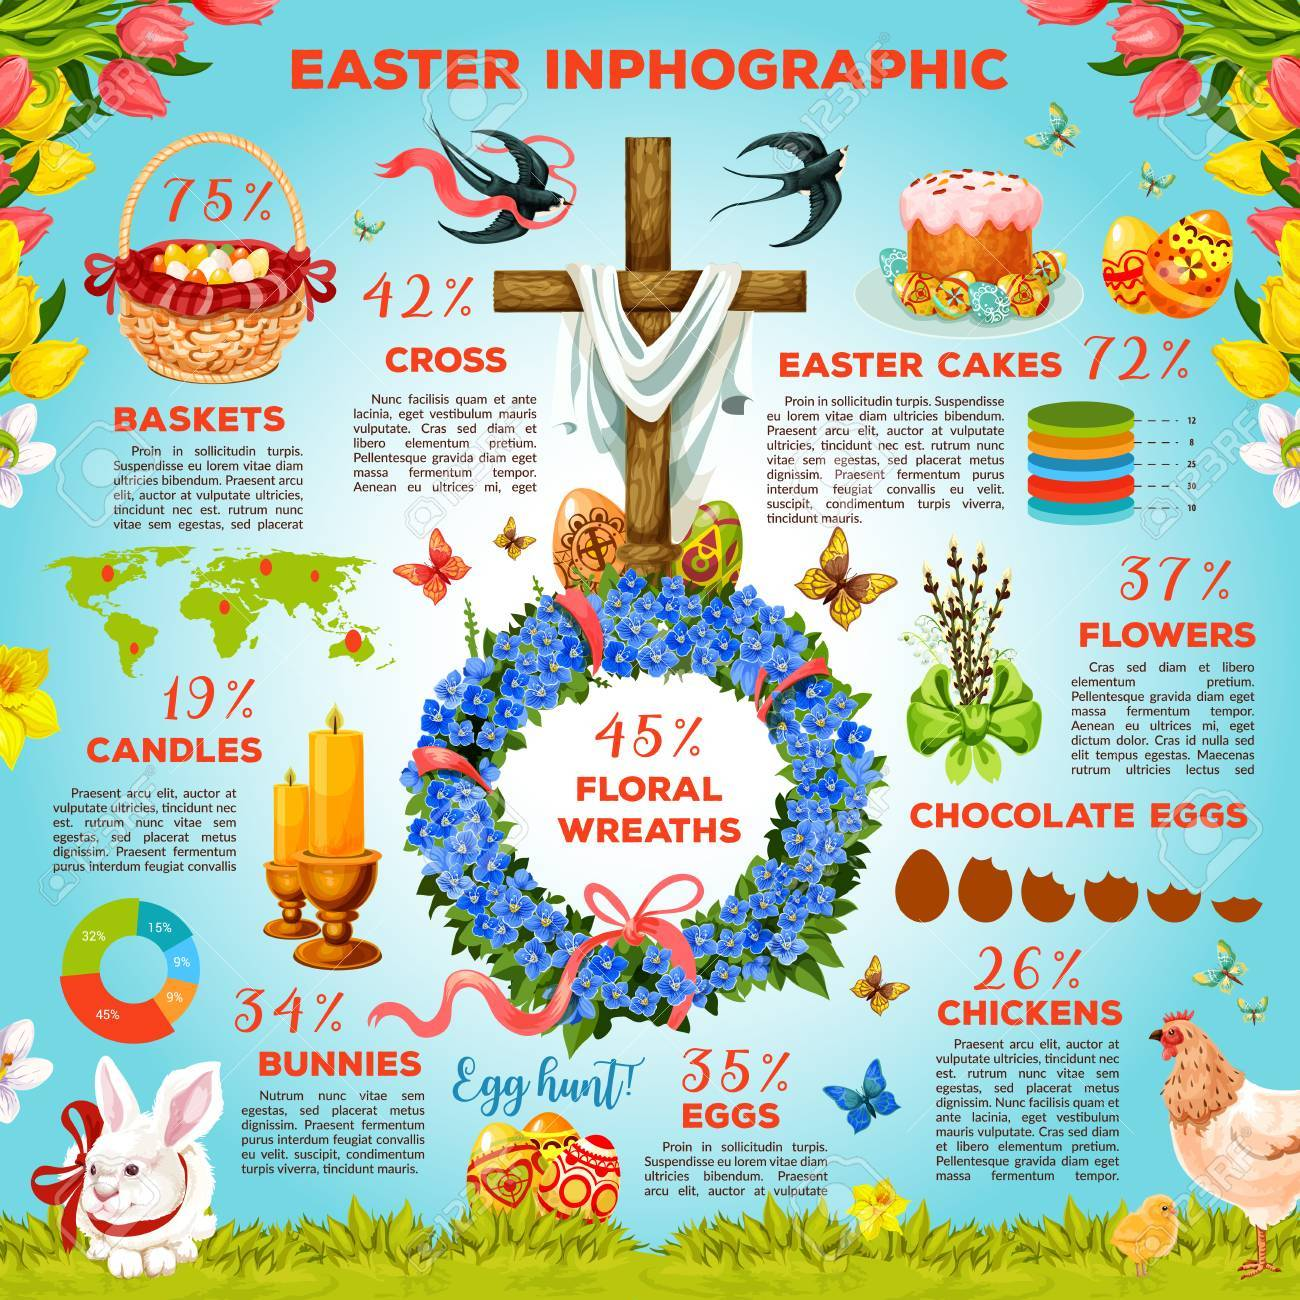 Easter Symbols Infographic Design Easter Egg Hunt Meadow With